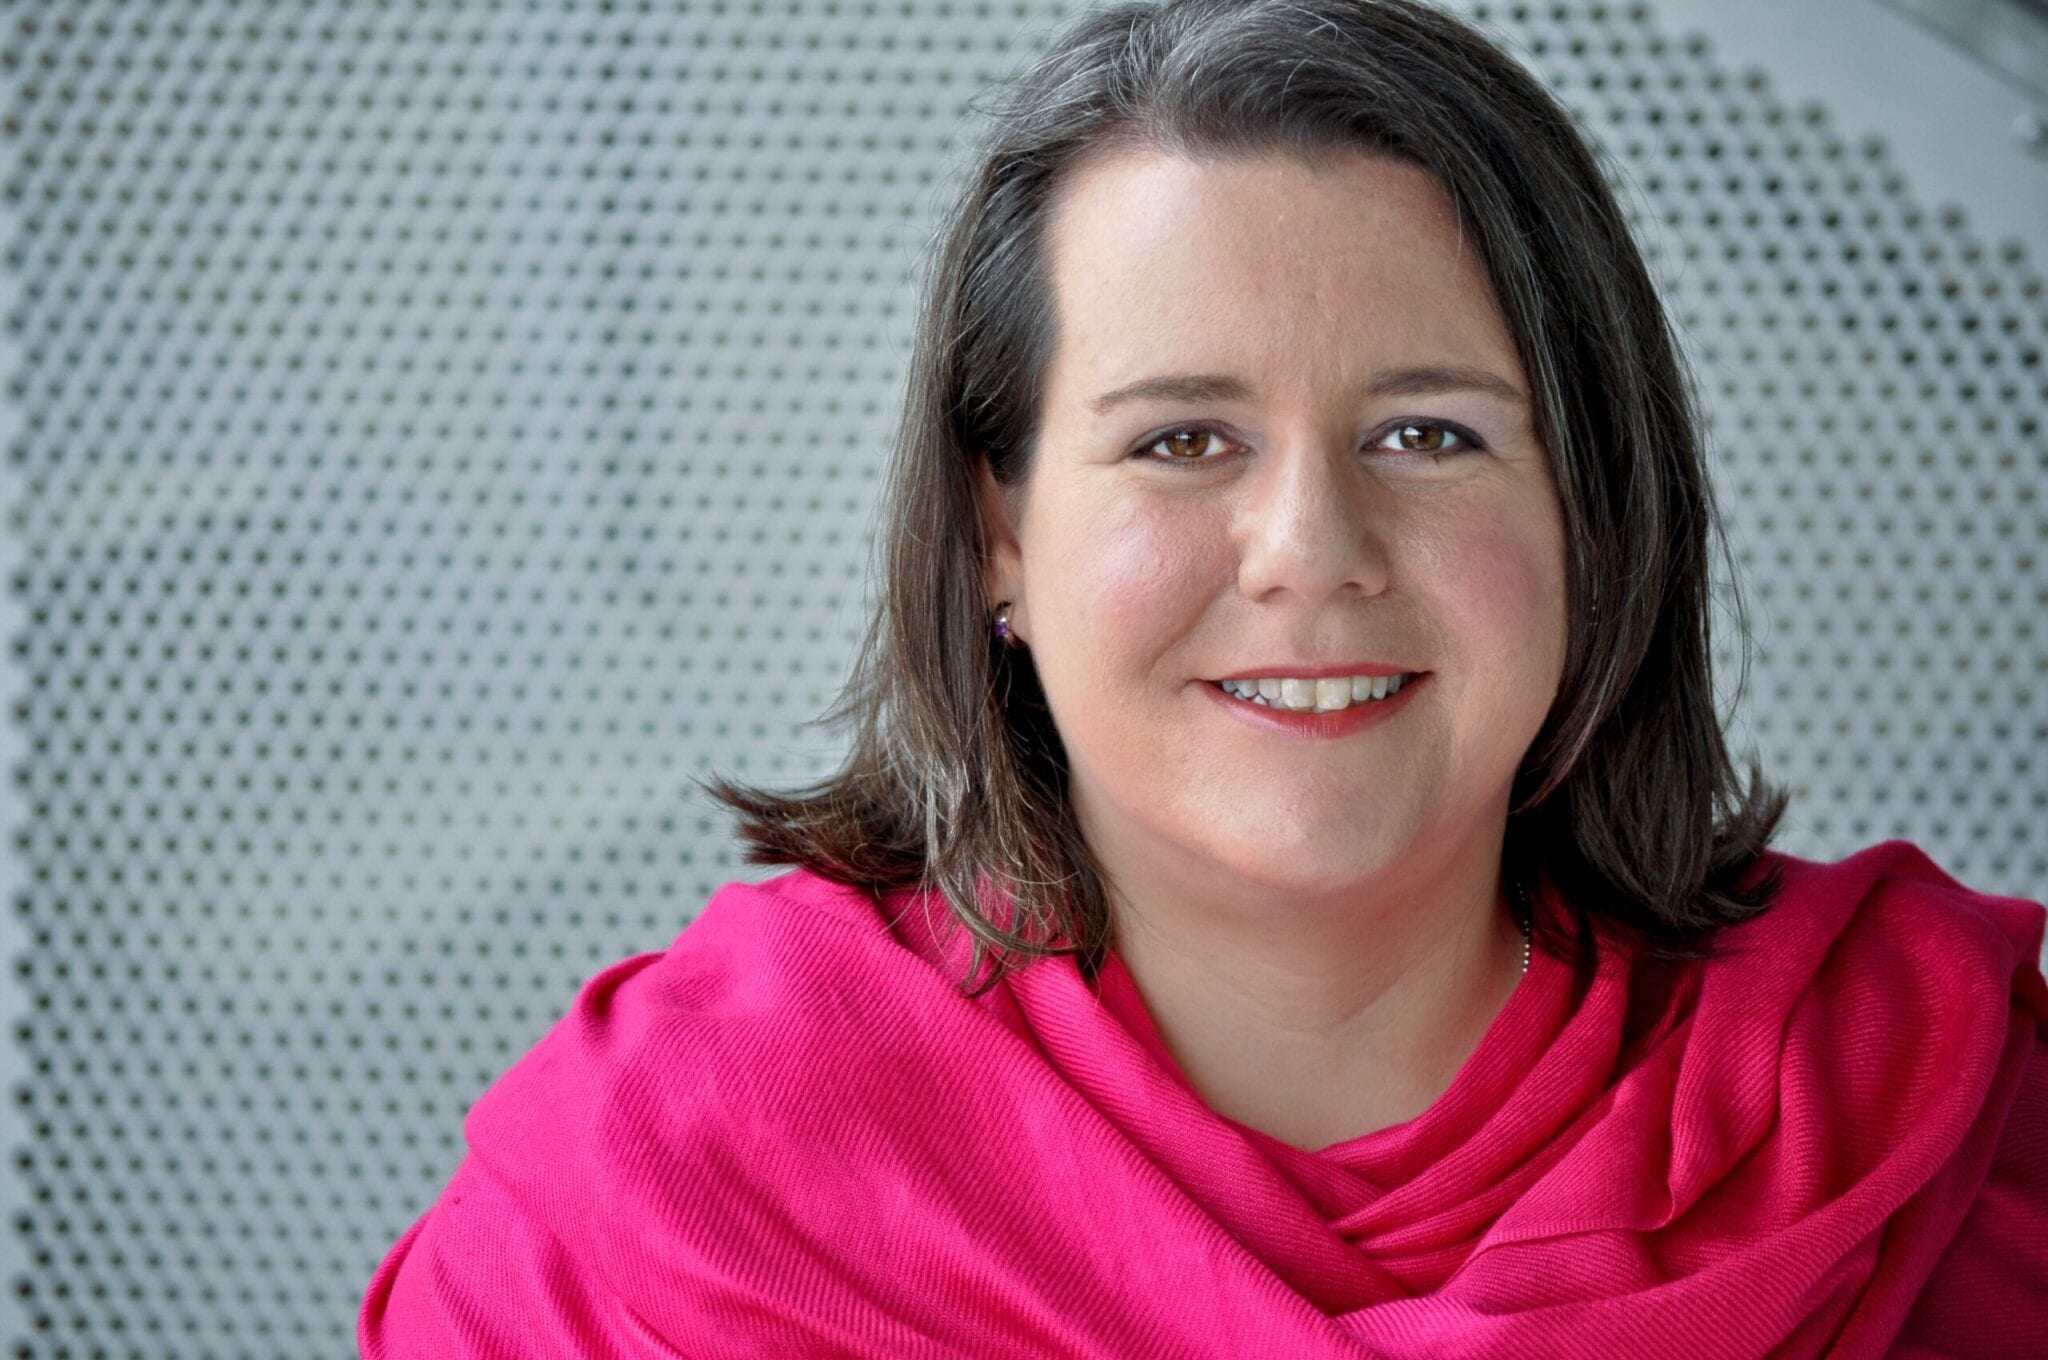 Picture of Antoinette Verdone wearing a pink scarf with a gray grate in the background